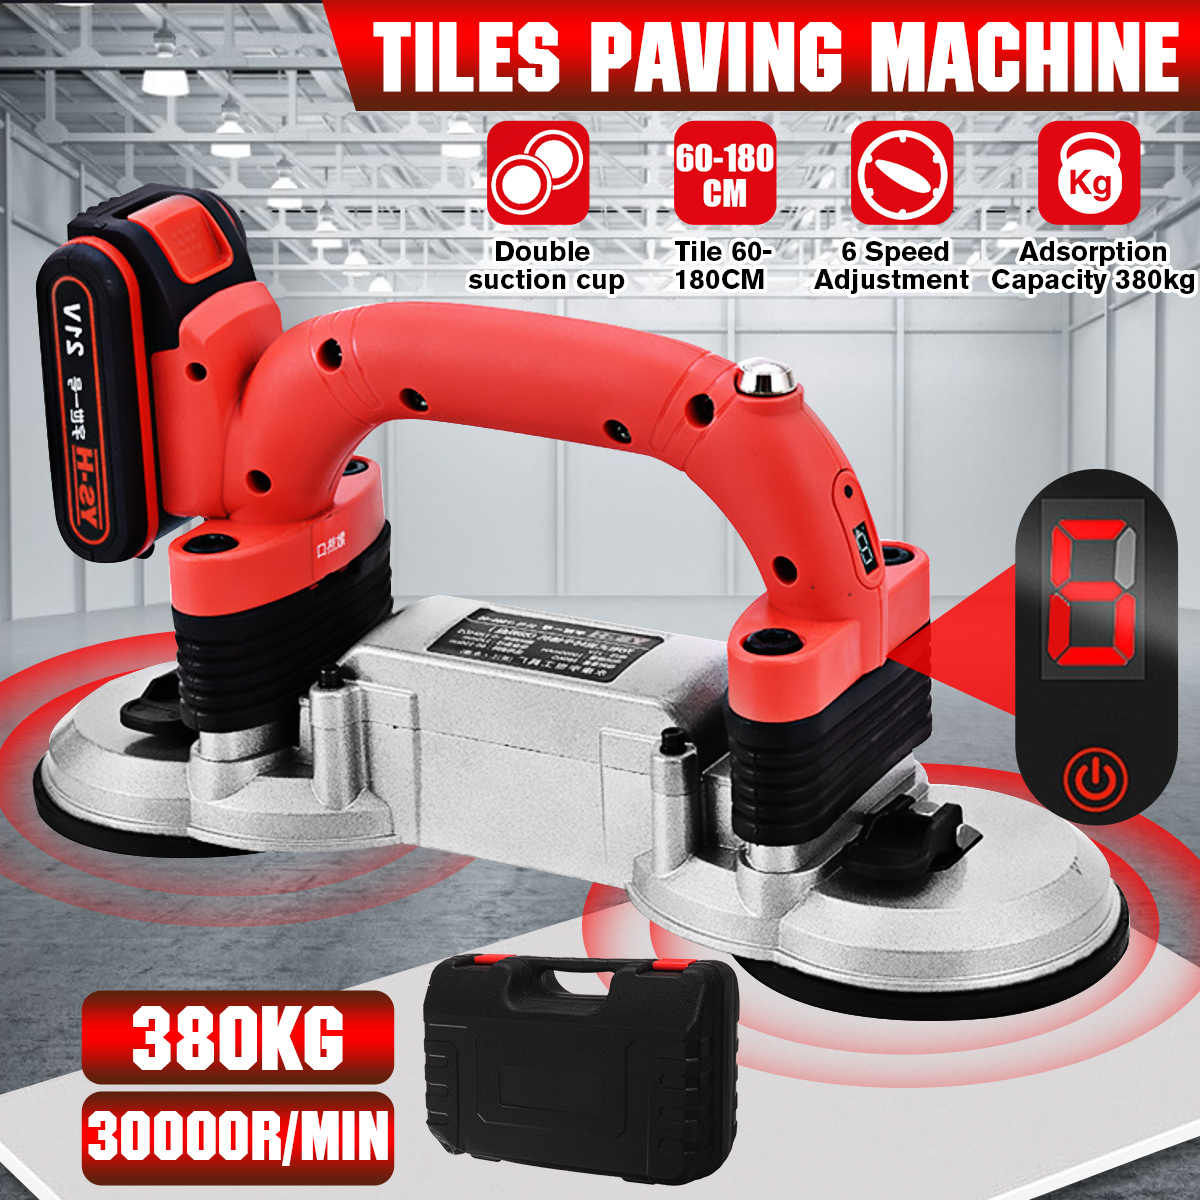 20W Tiling Tiles Machine Tiles Vibrator Suction Cup Adjustable Protable  Automatic Floor Vibrator Leveling Tool With Battery